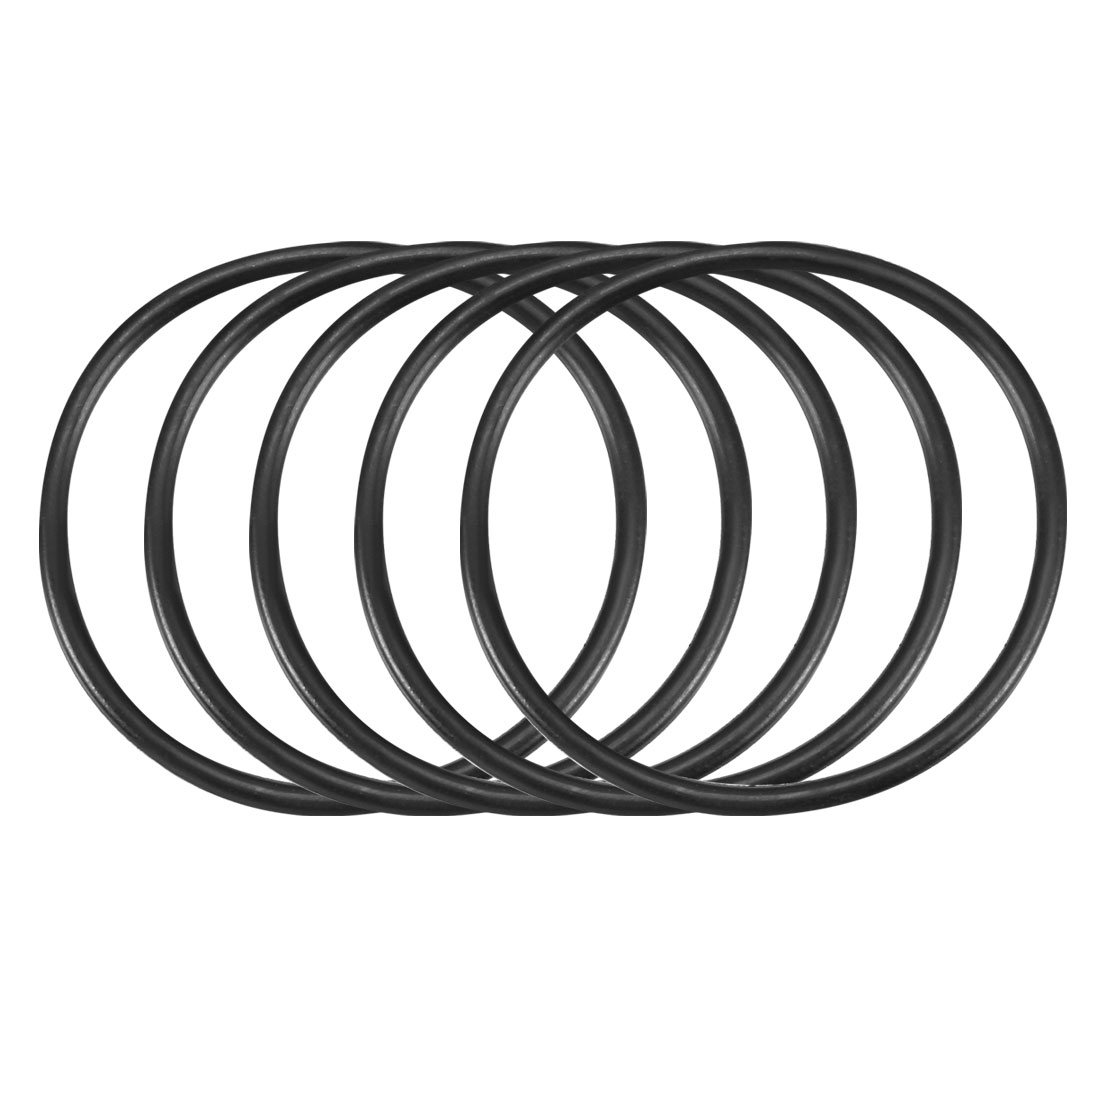 30Pcs Black 37 x 2mm Industrial Flexible Rubber O Ring Oil Sealing Grommets